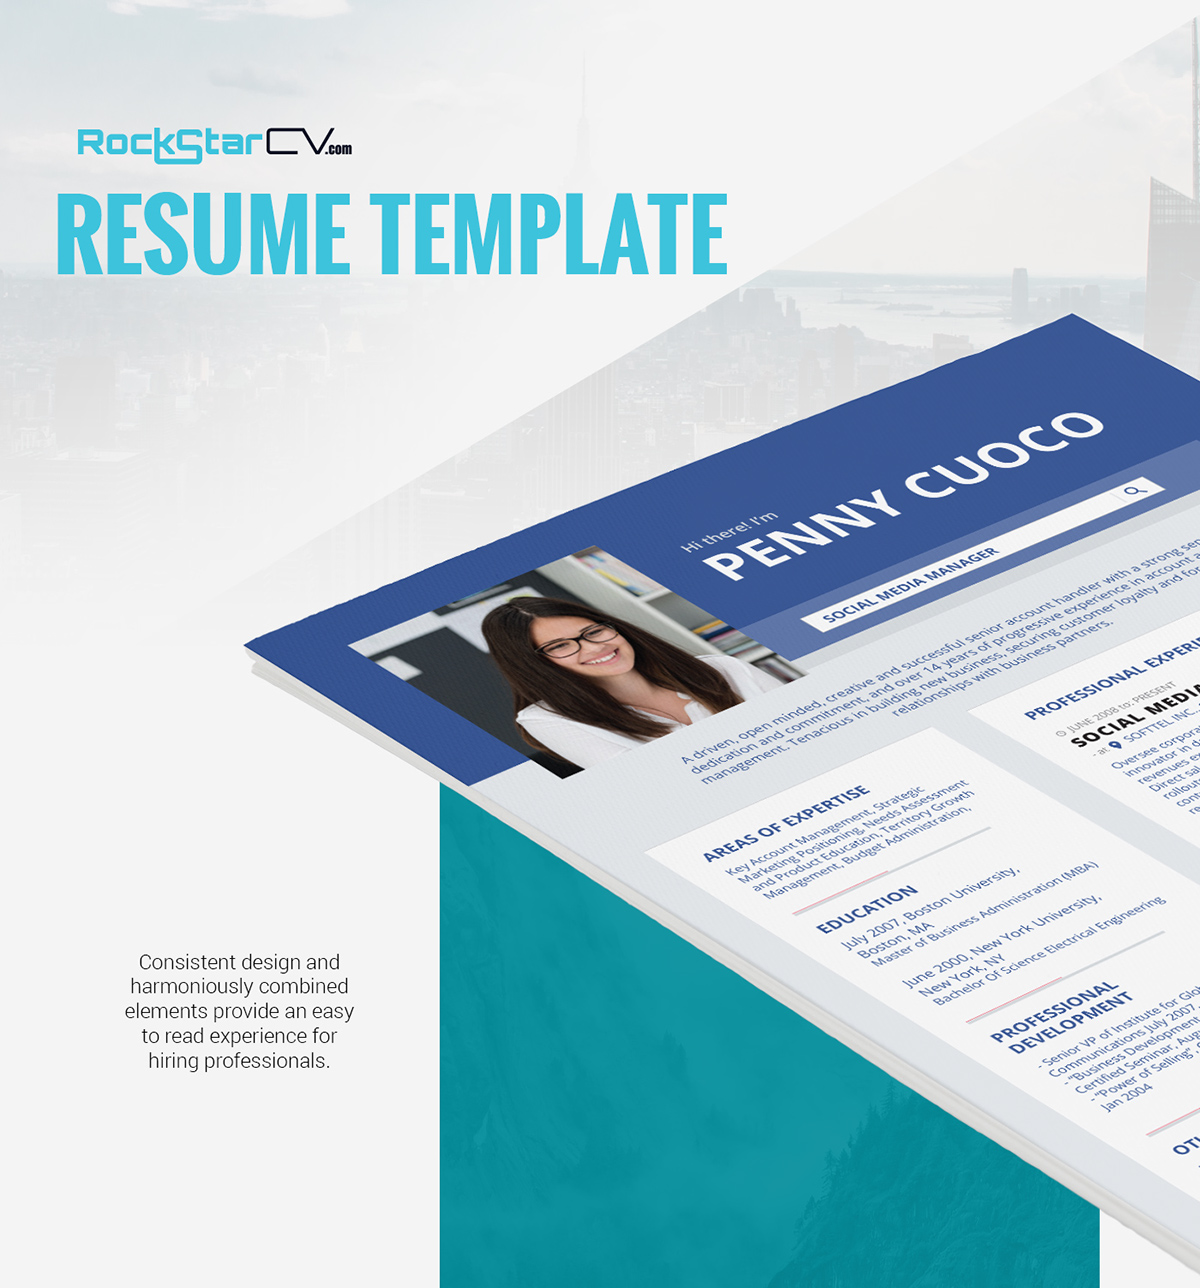 Resume Template Facebook On Wacom Gallery